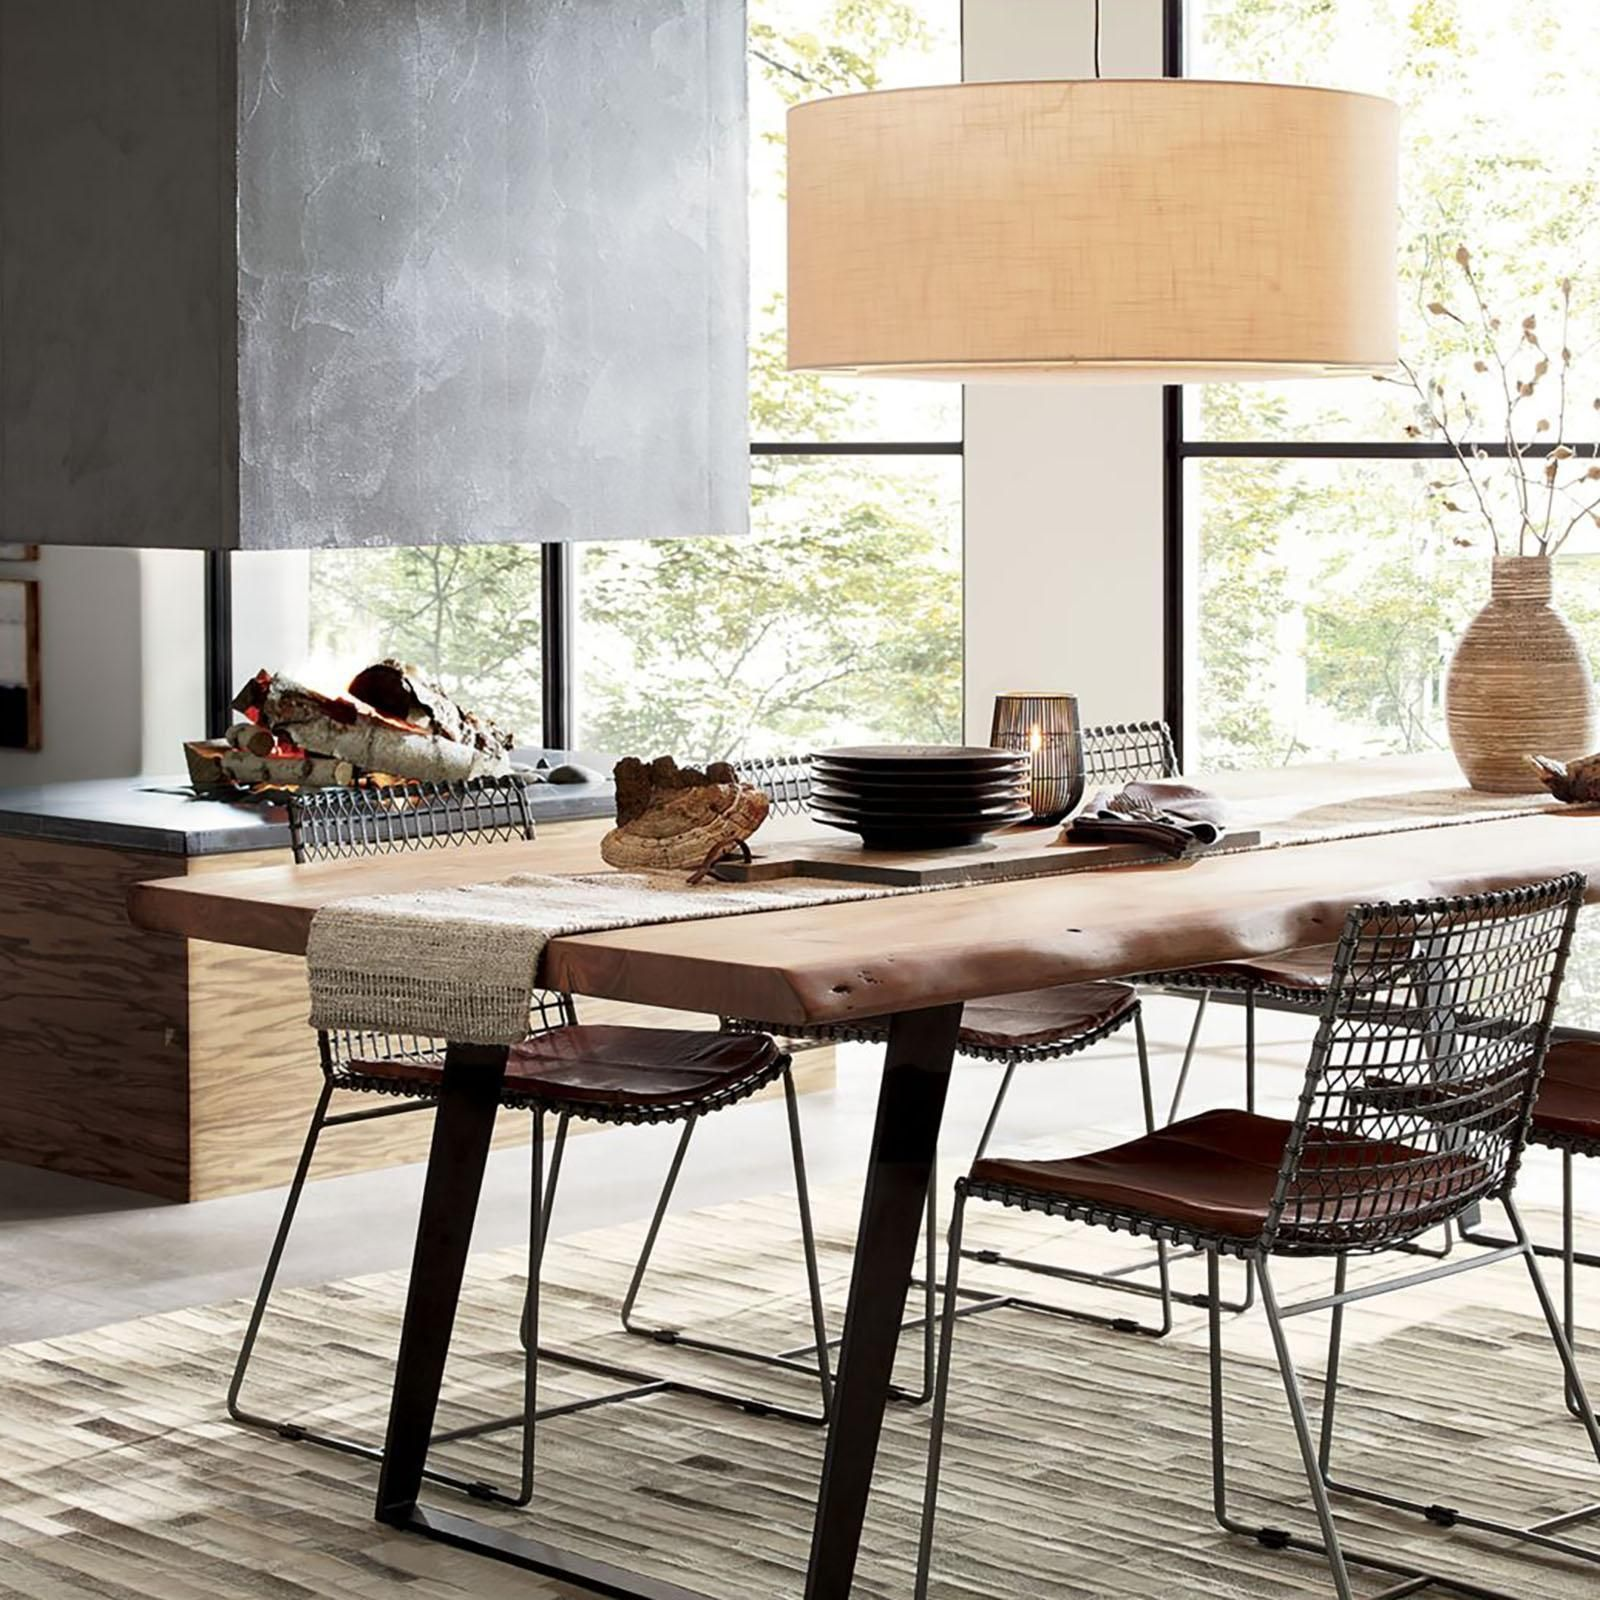 Tig Metal Dining Chair By Crate And Barrel Zola Metal Dining Chairs Dining Table Dining